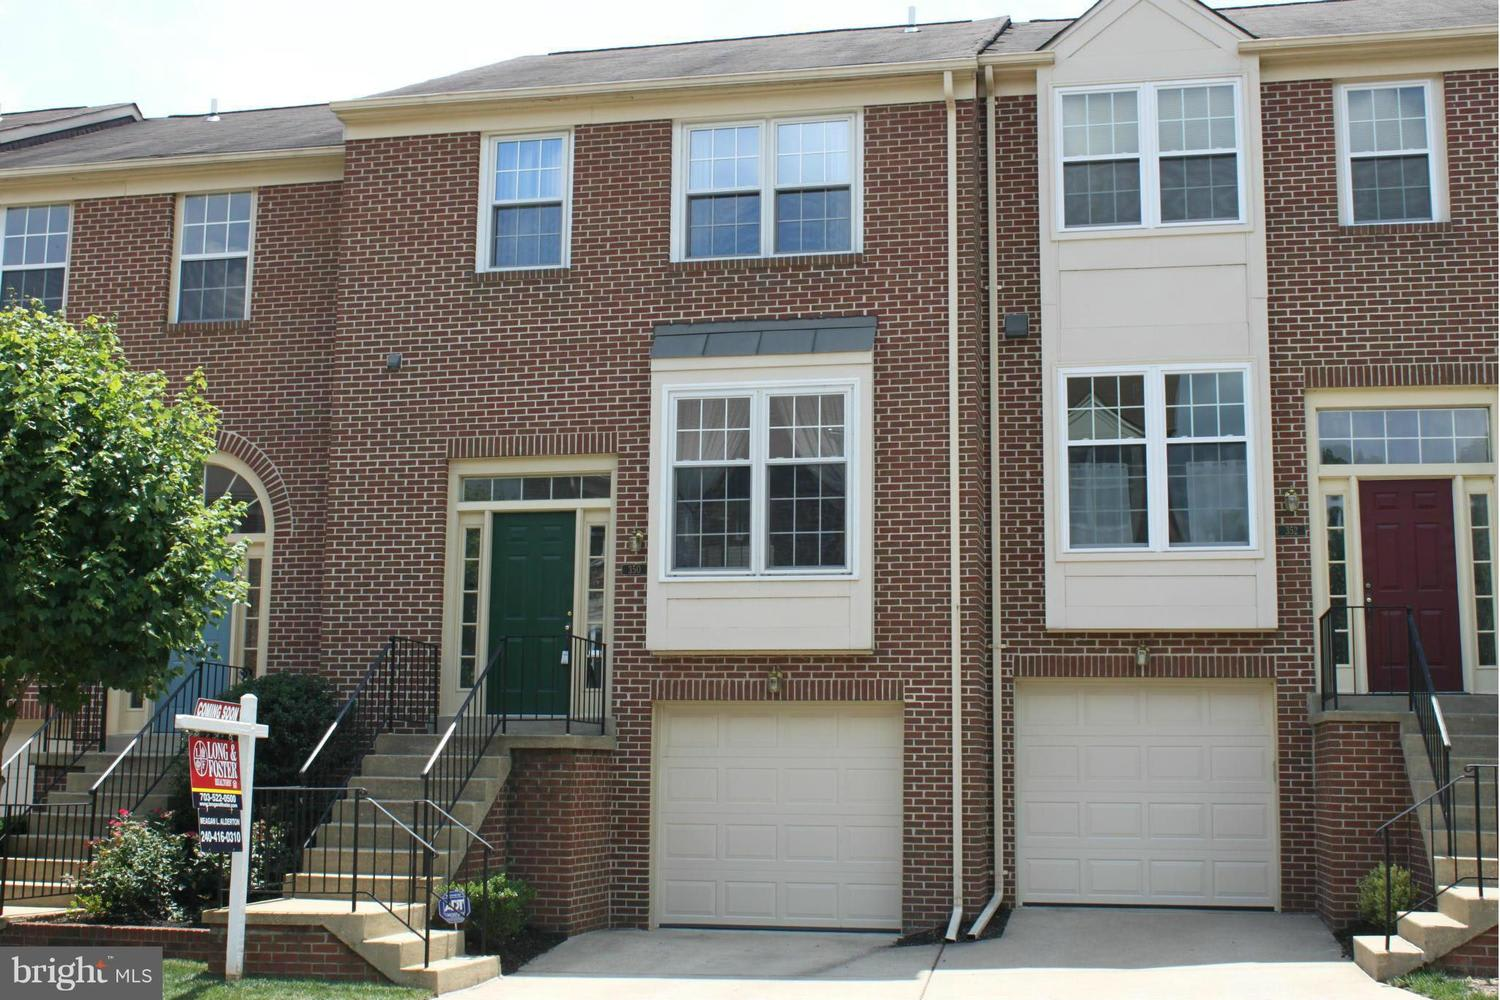 350 Cloude's Mill Dr photo